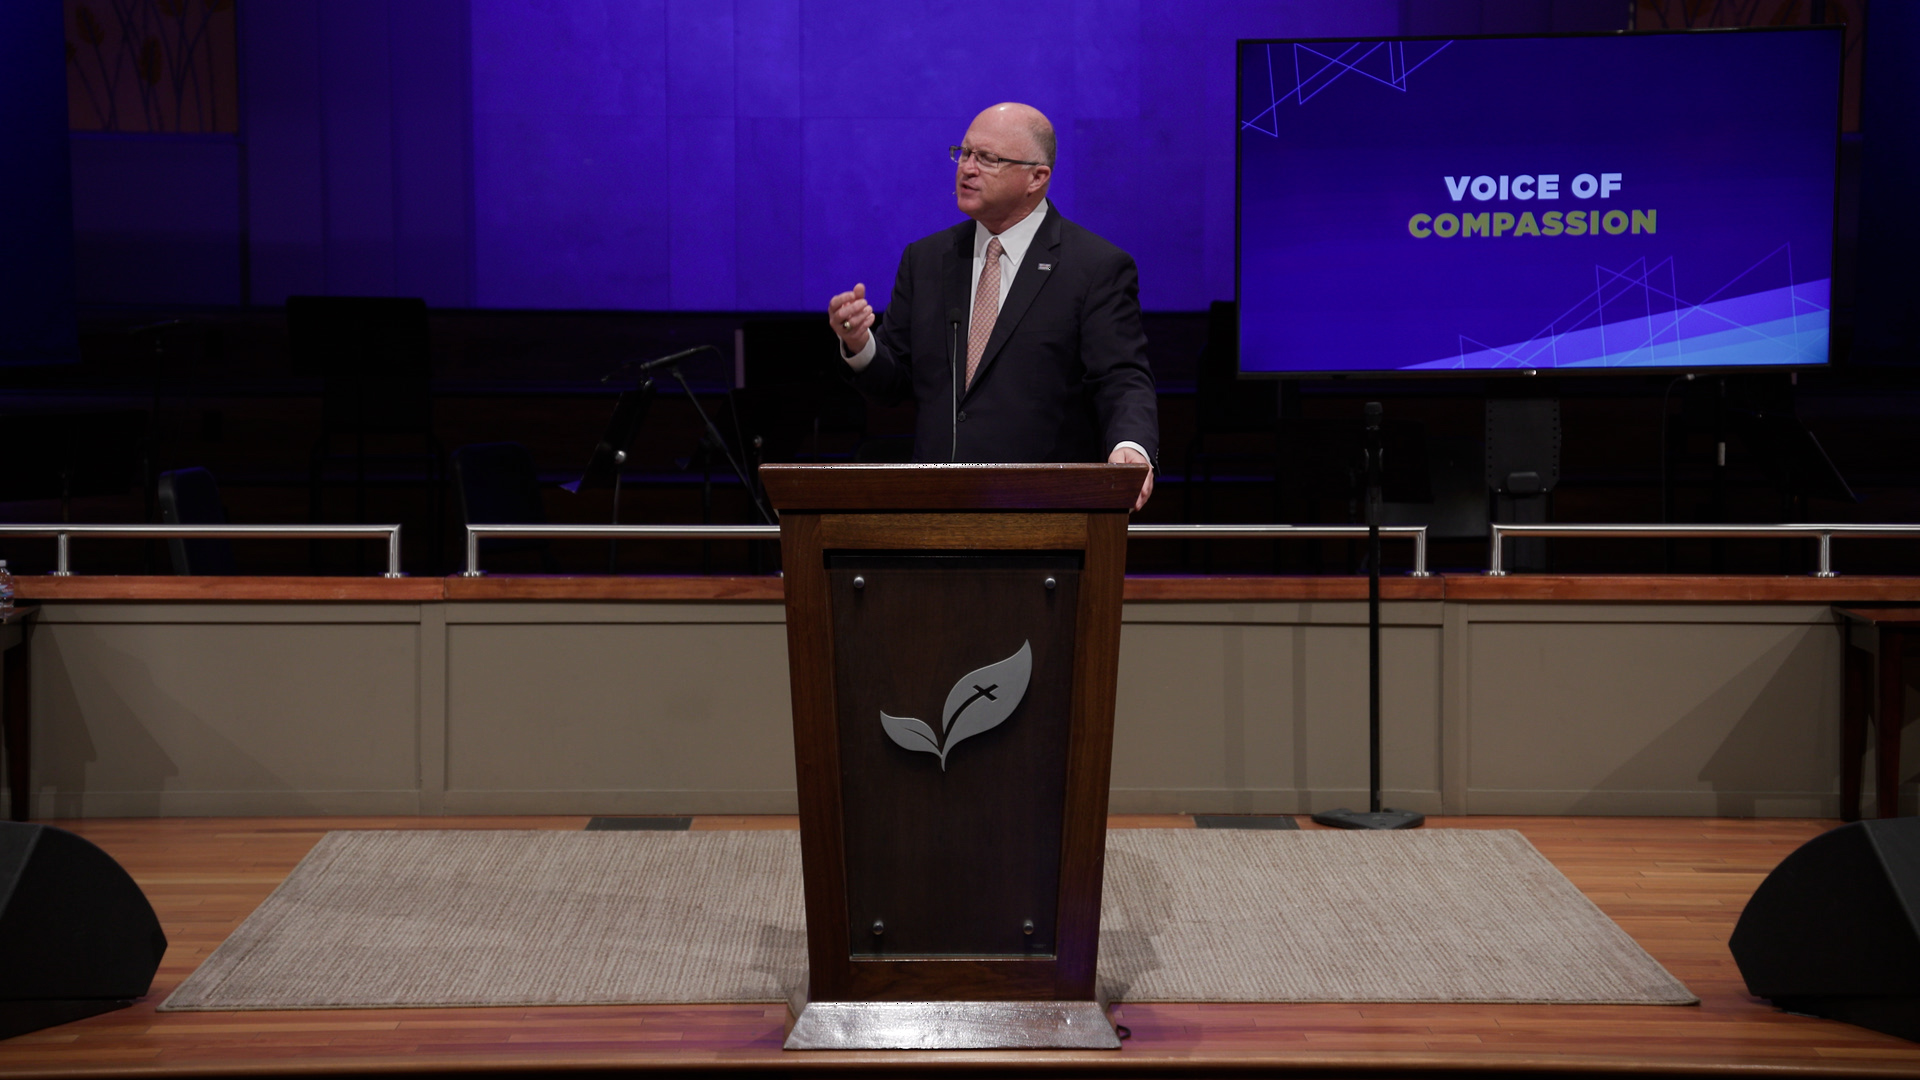 Pastor Paul Chappell: A Voice to Declare